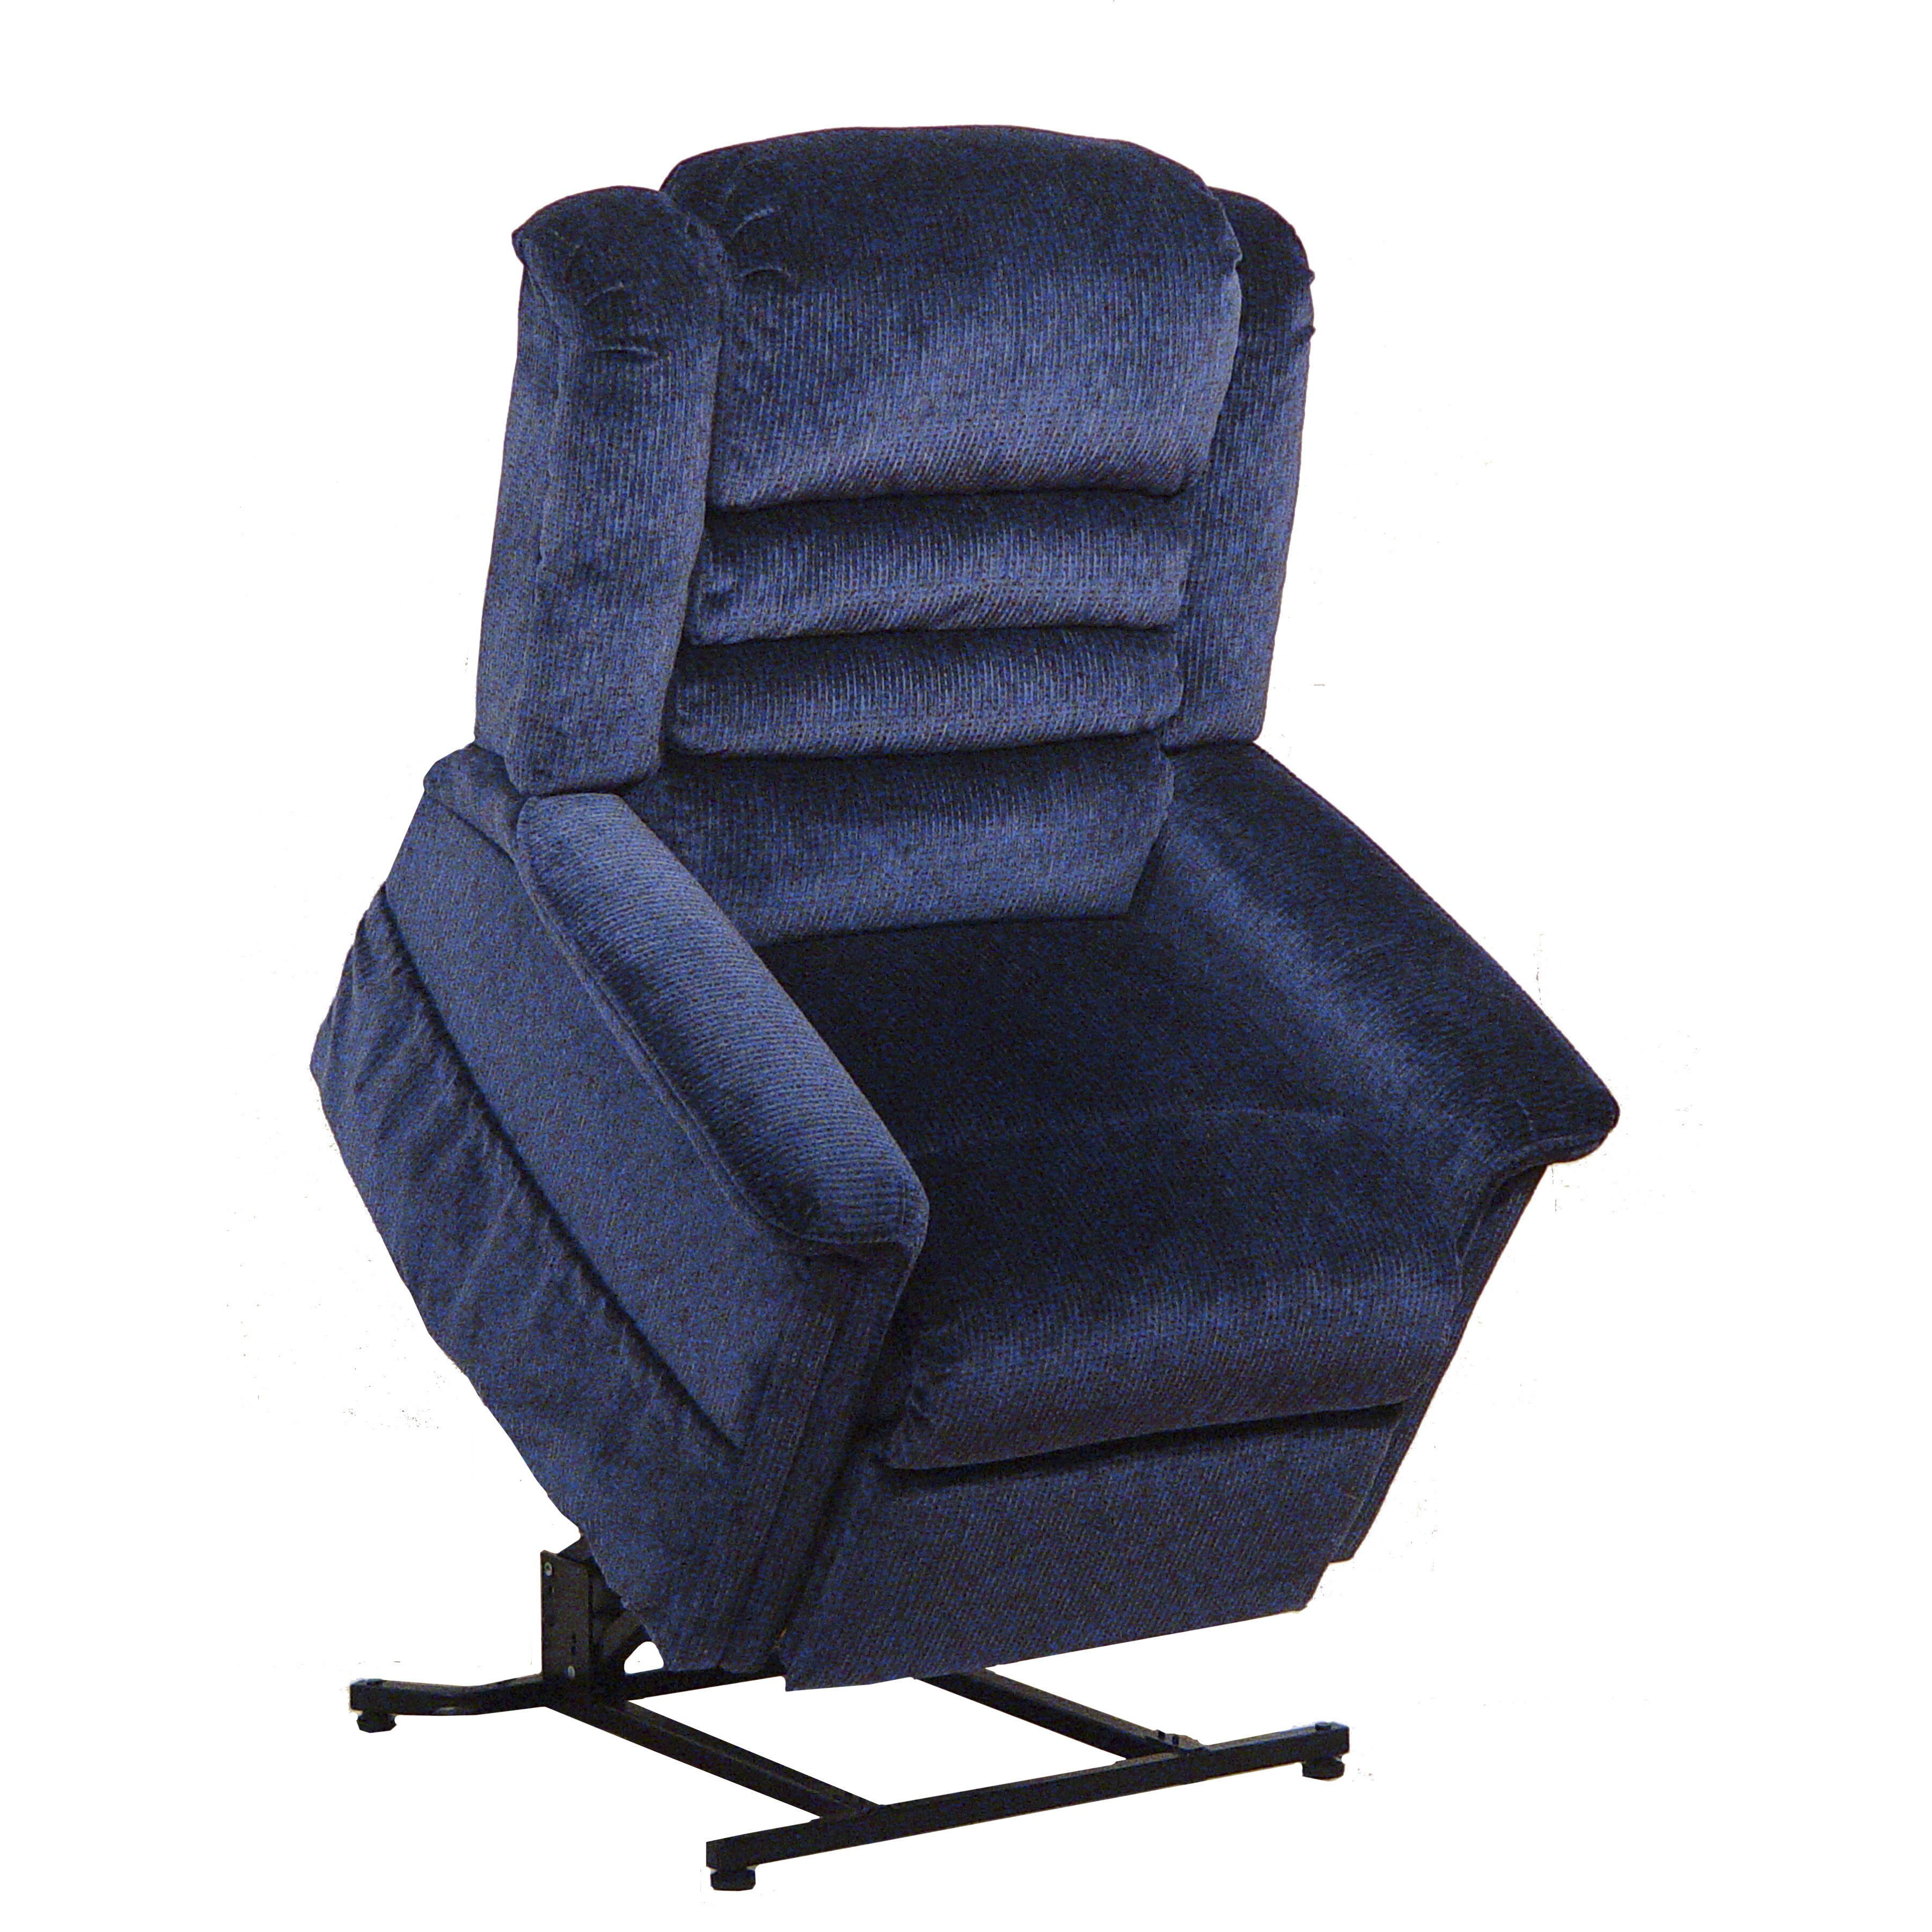 Catnapper soother pow 39 r lift full lay out chaise recliner reviews wayfair - Catnapper lift chairs recliners ...